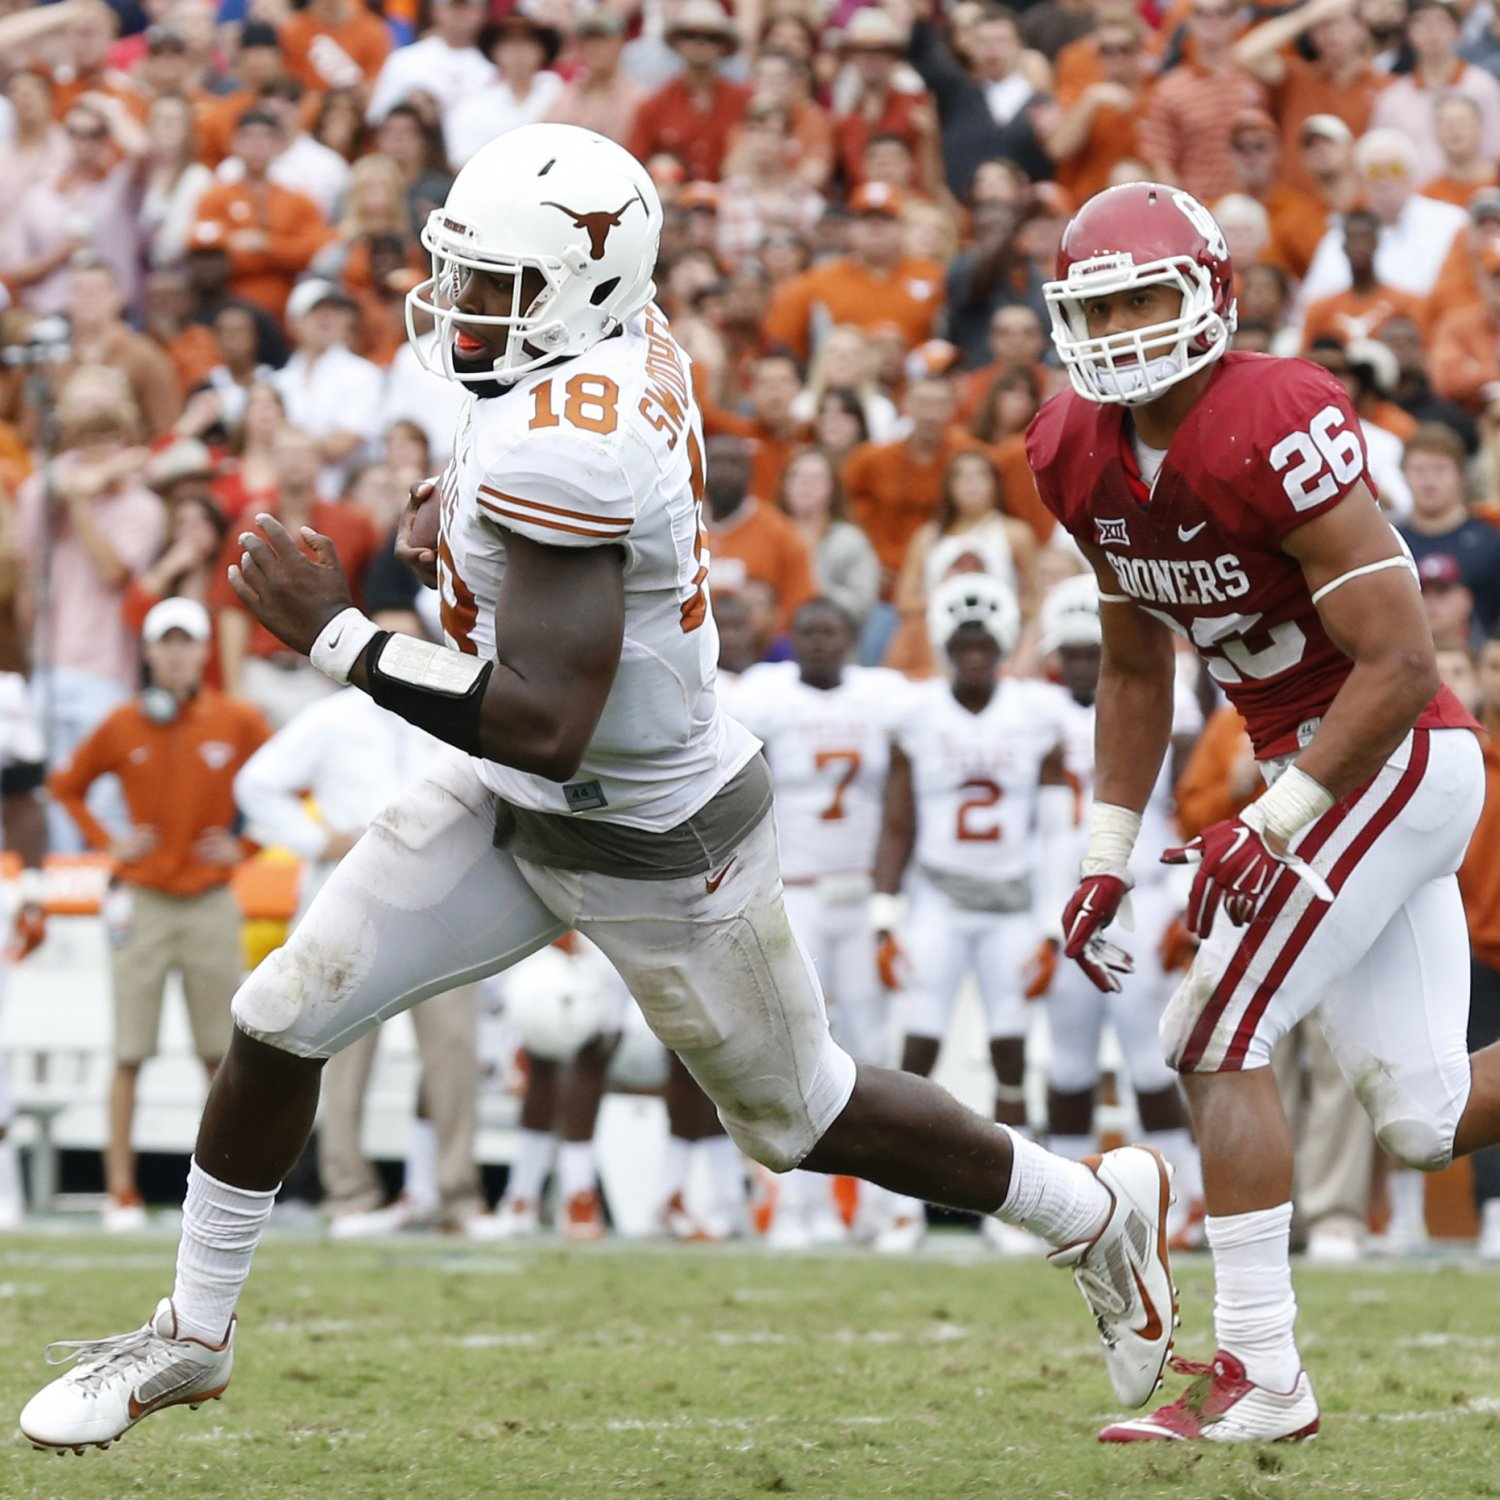 Texas Longhorn Football News, Schedule, Scores: Dallas ...